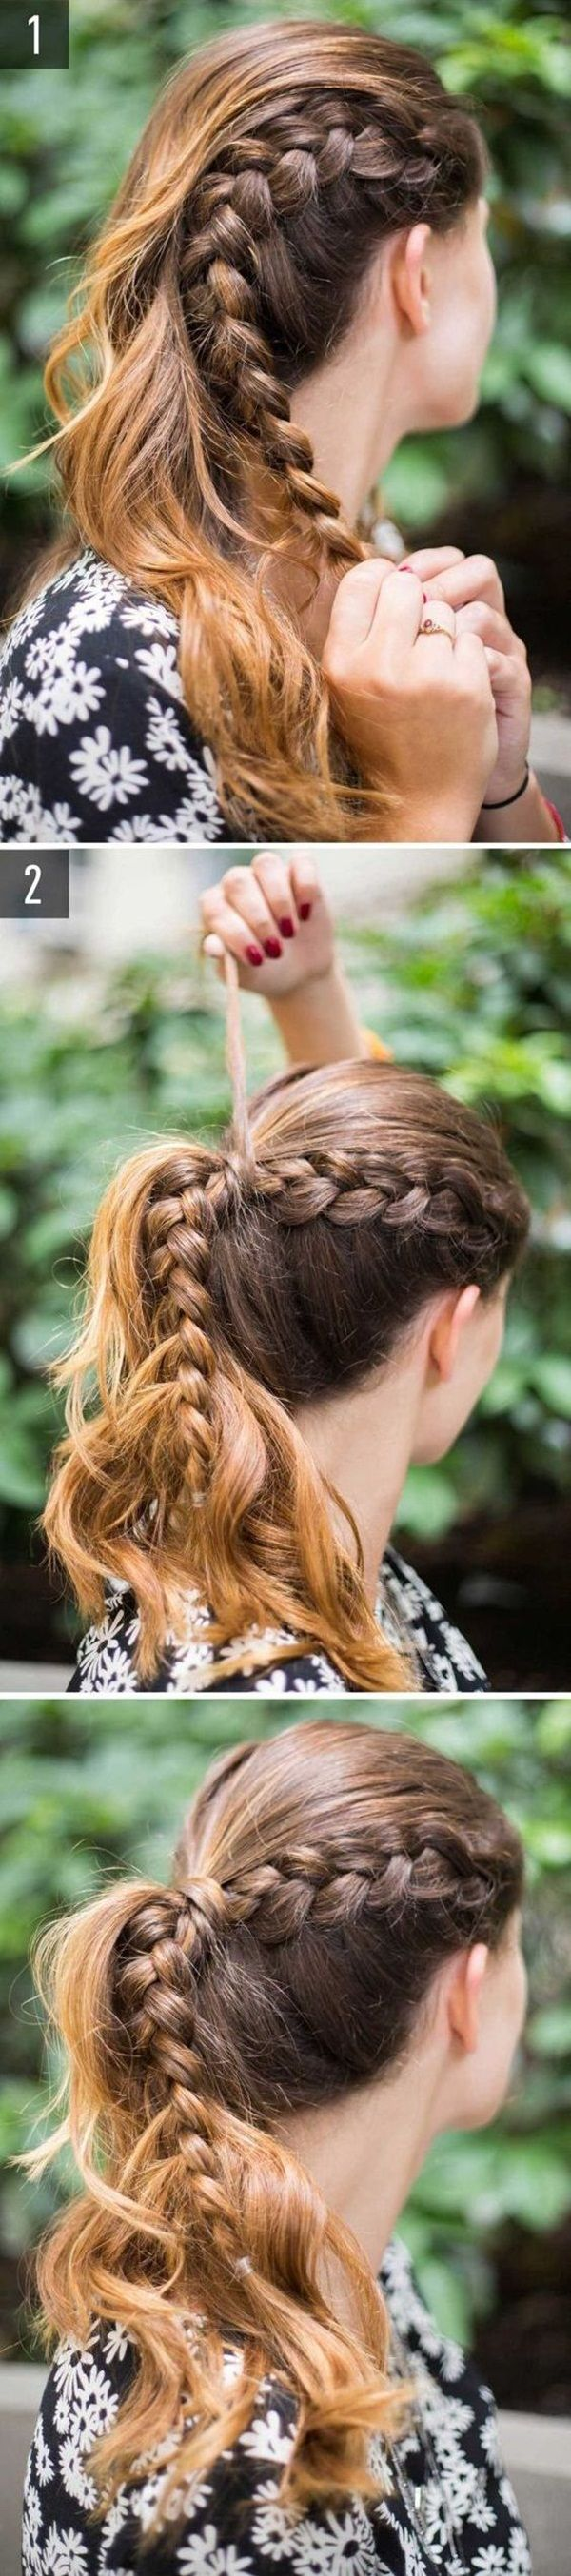 40 Easy Hairstyles for Schools to Try in 2016 #easyhairstyles